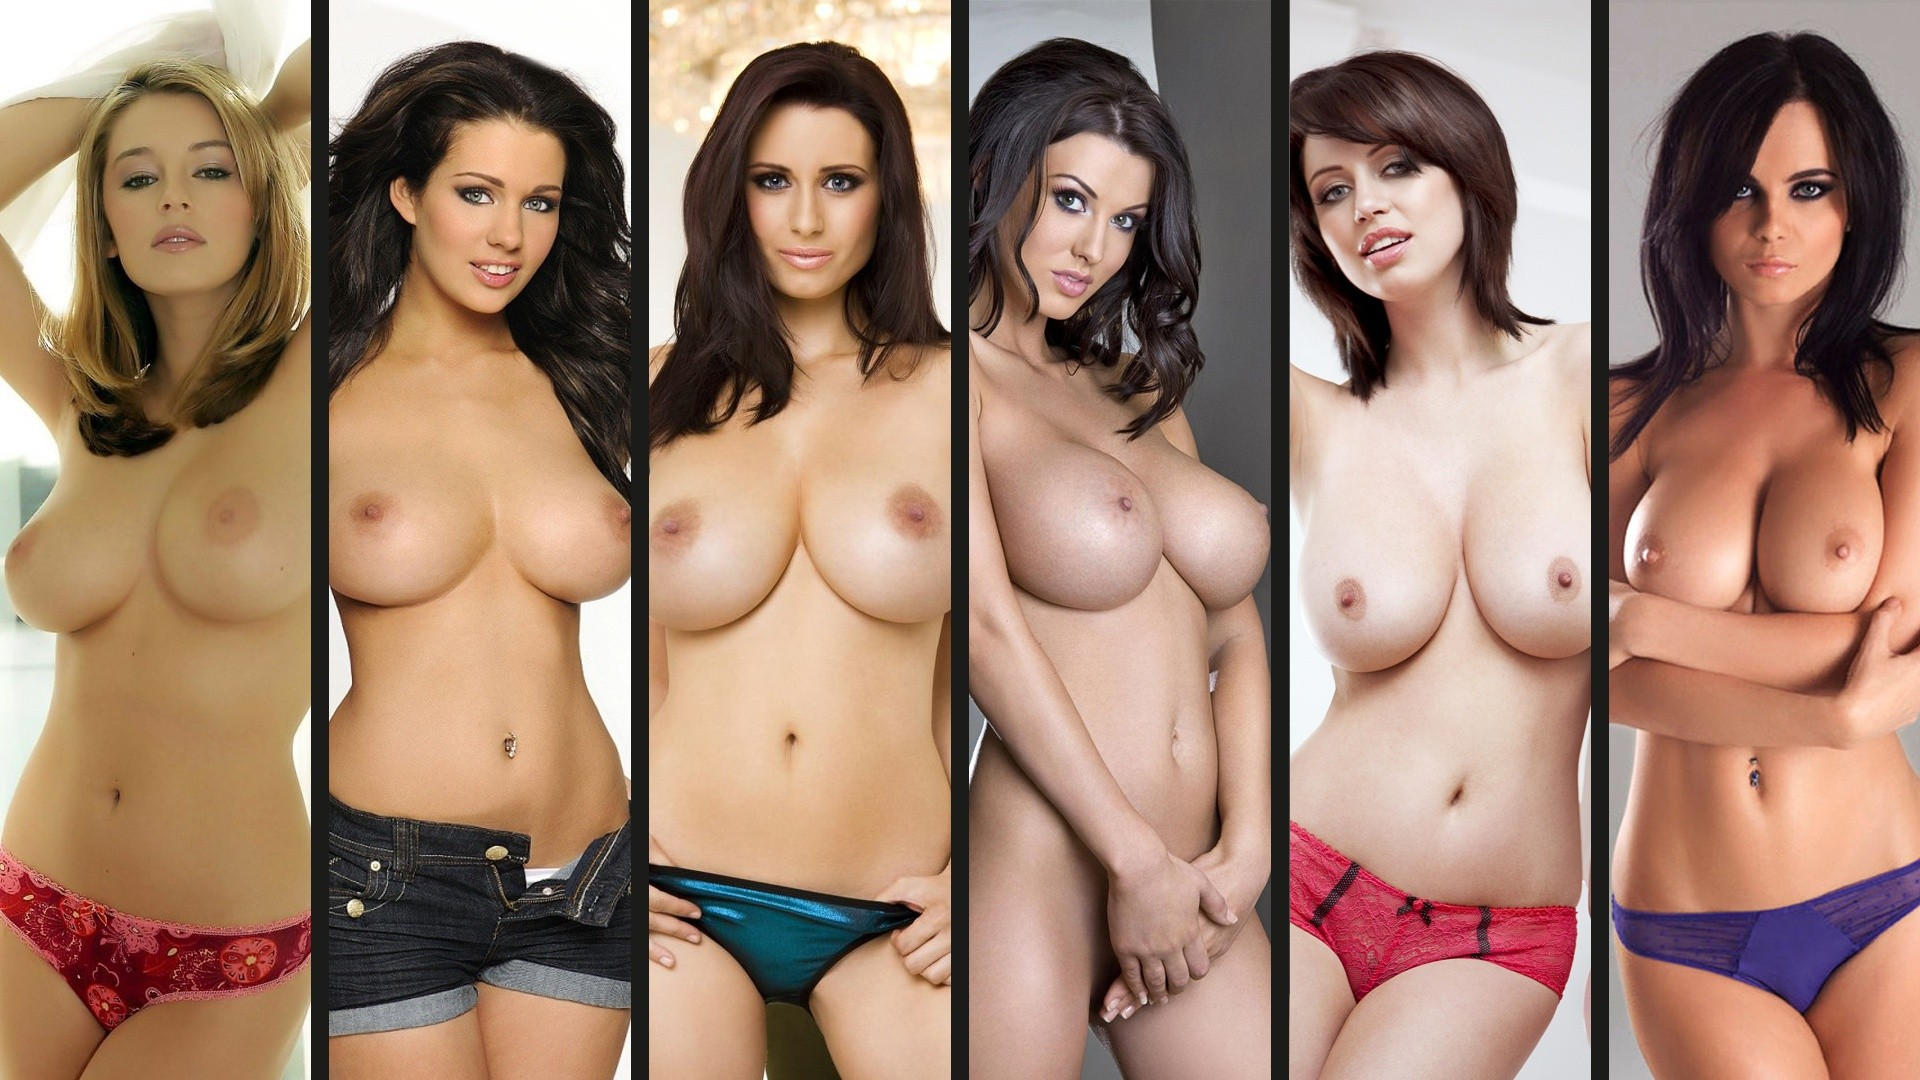 1920x1080 pix. Wallpaper glamour, huge boobs, Keeley Hazell, Alice Goodwin,  holly